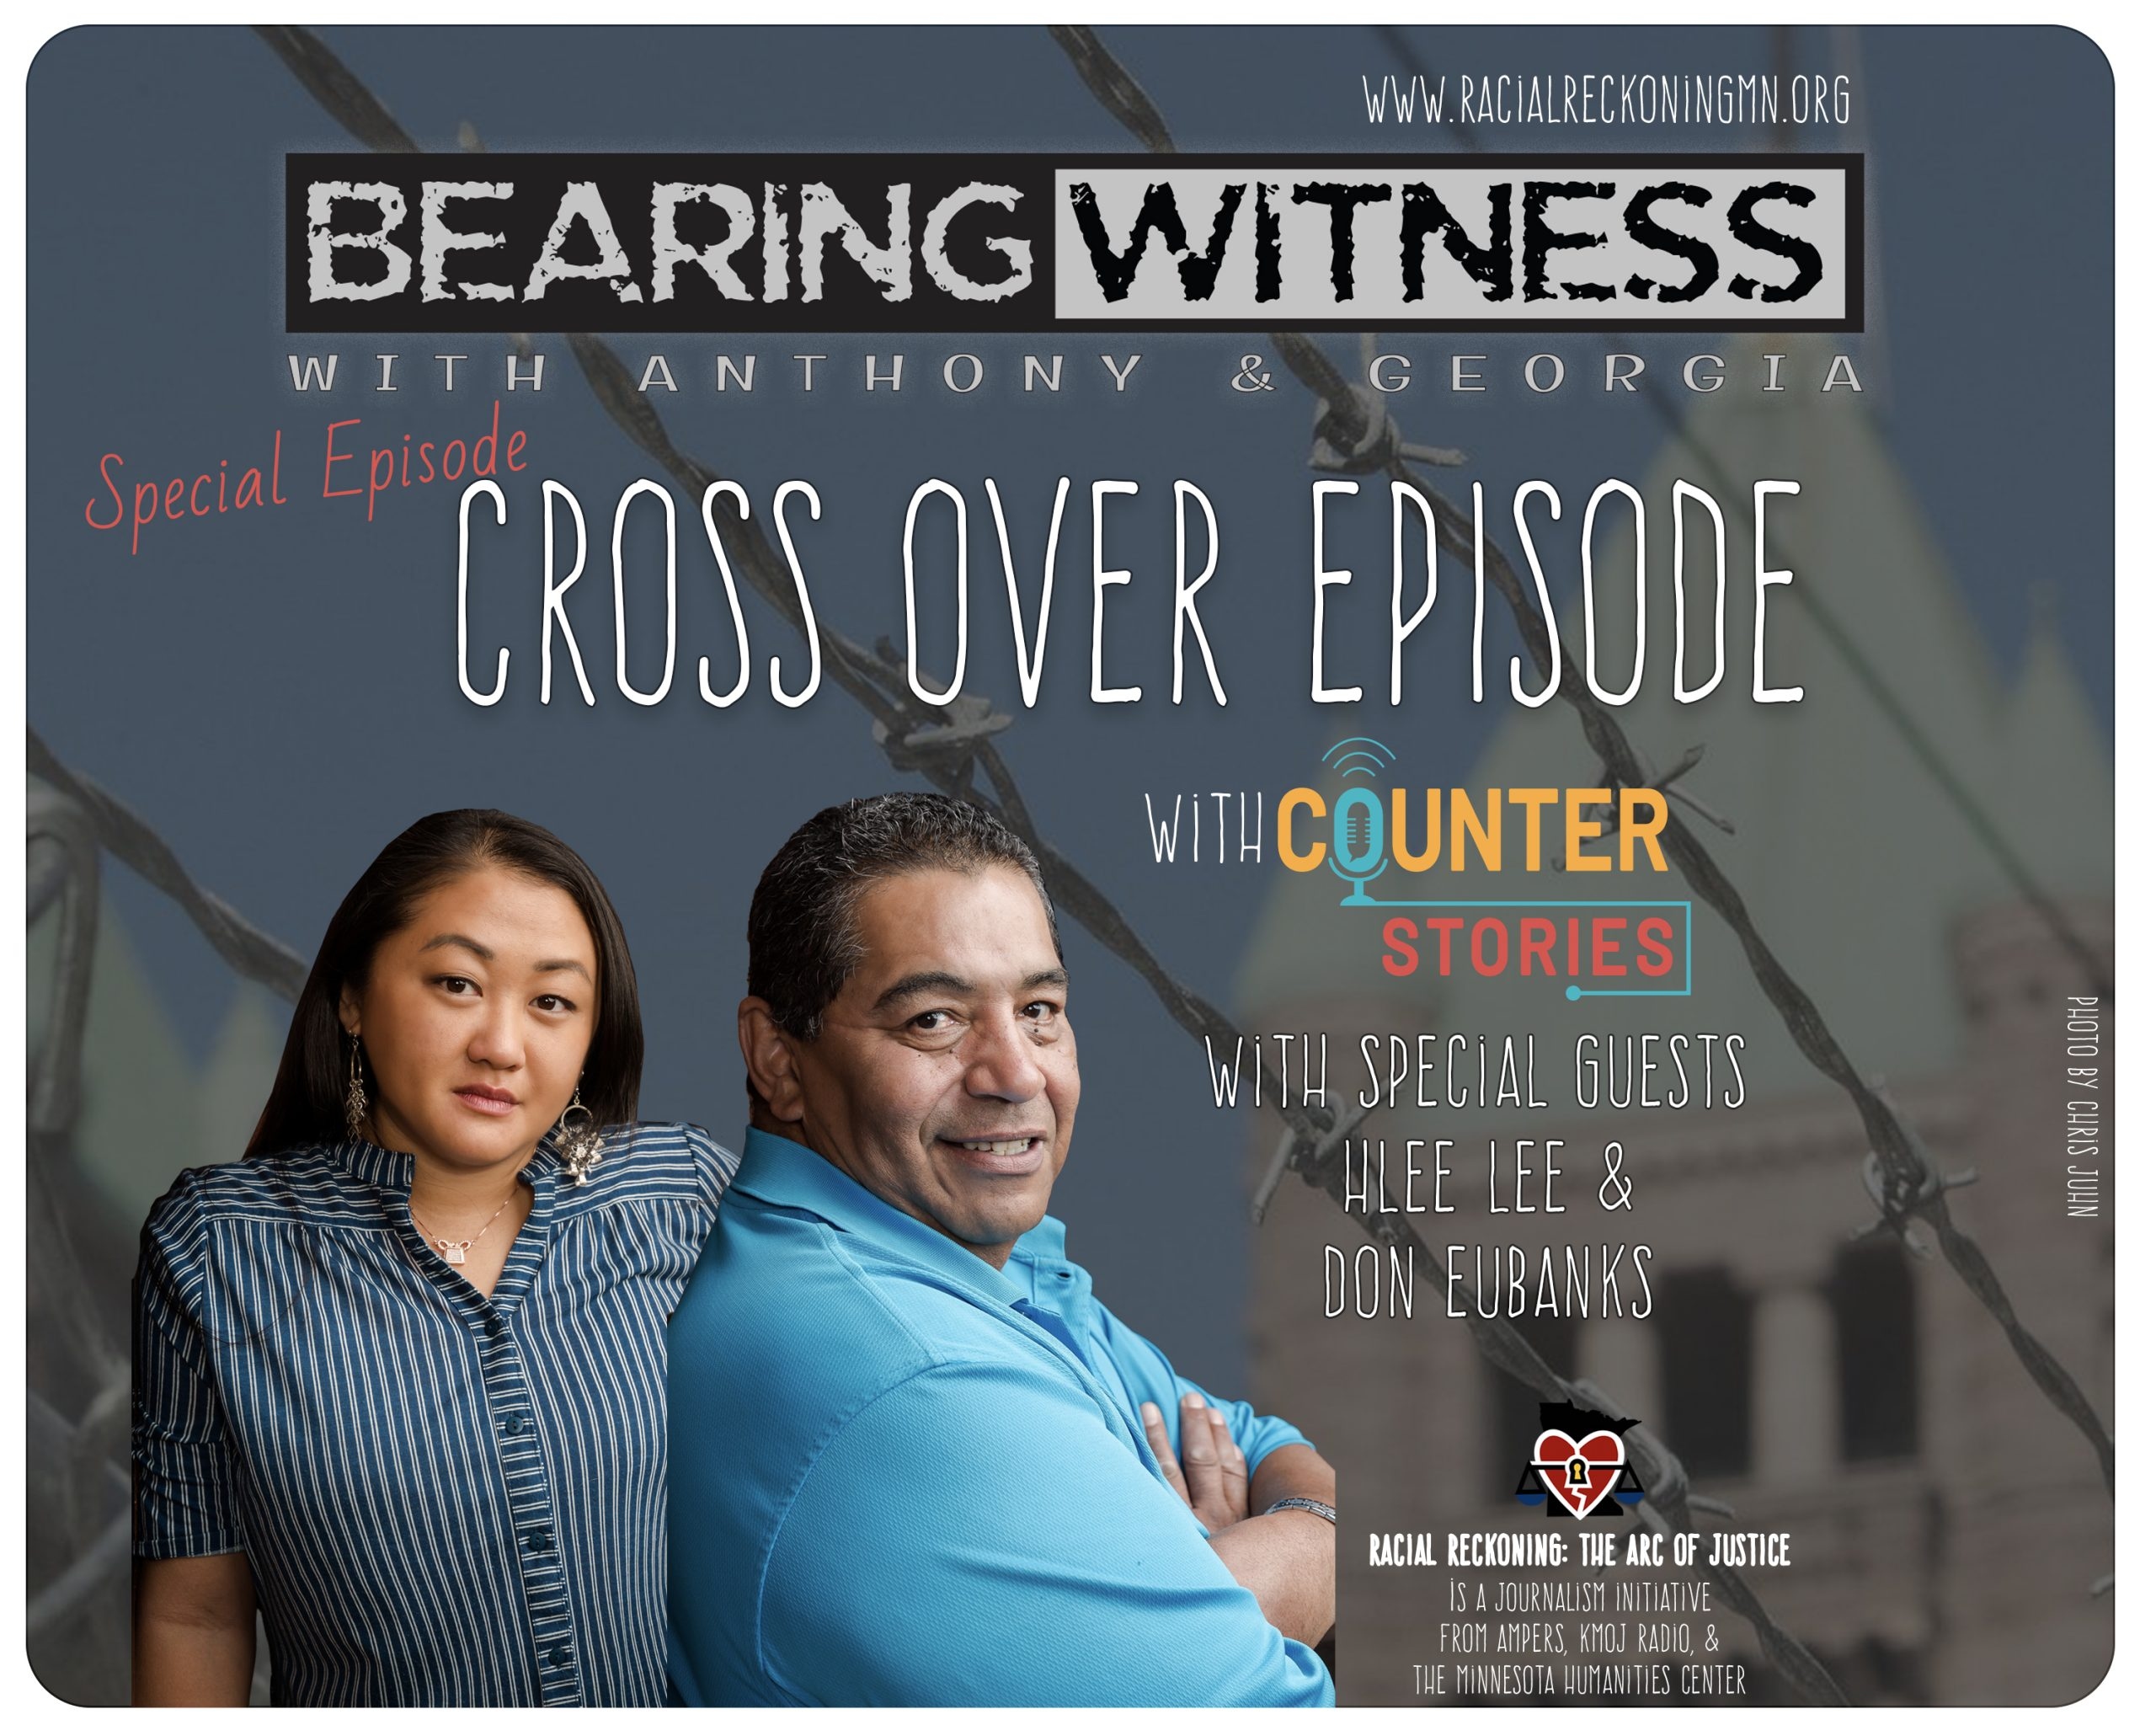 Cross Over Show with Counter Stories